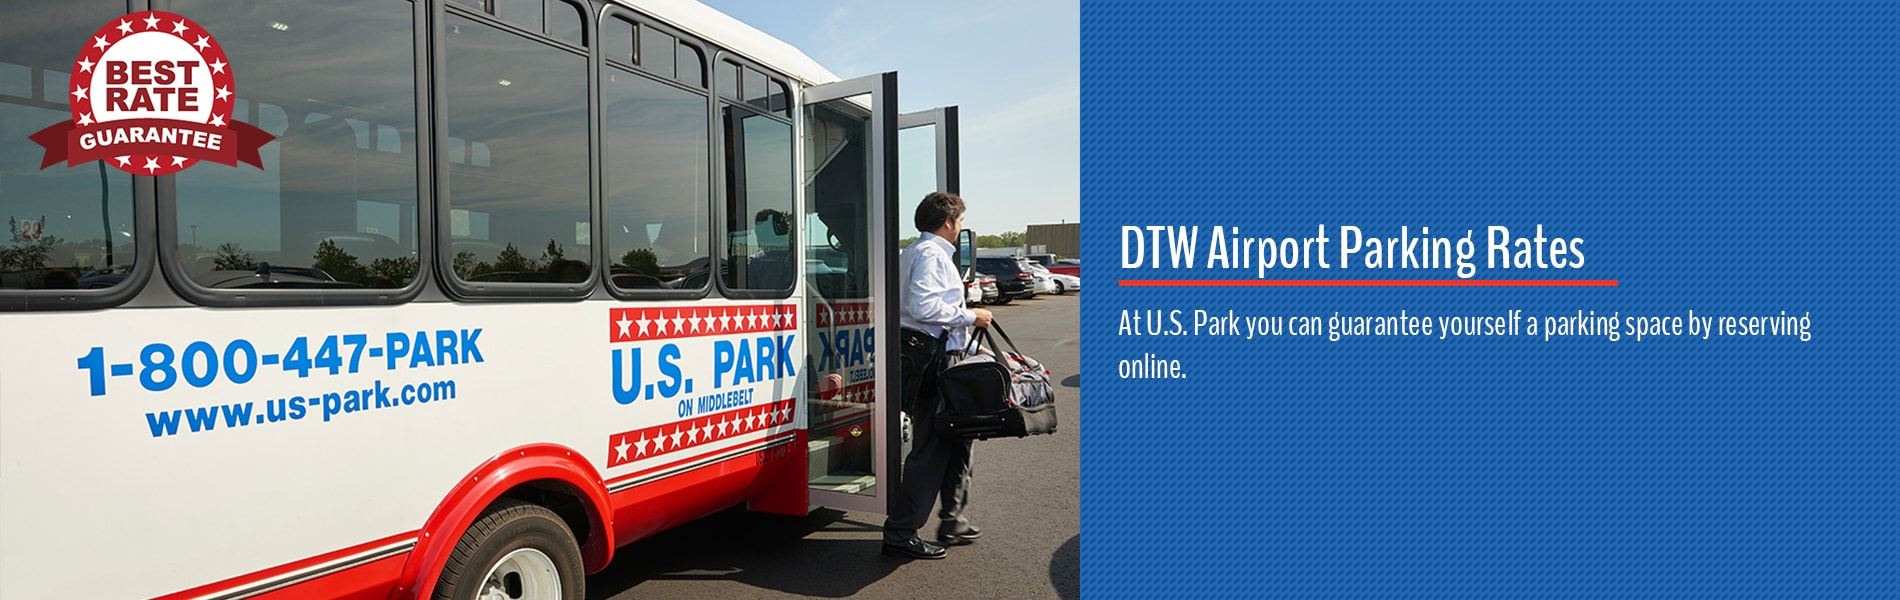 Dtw airport parking discount coupons